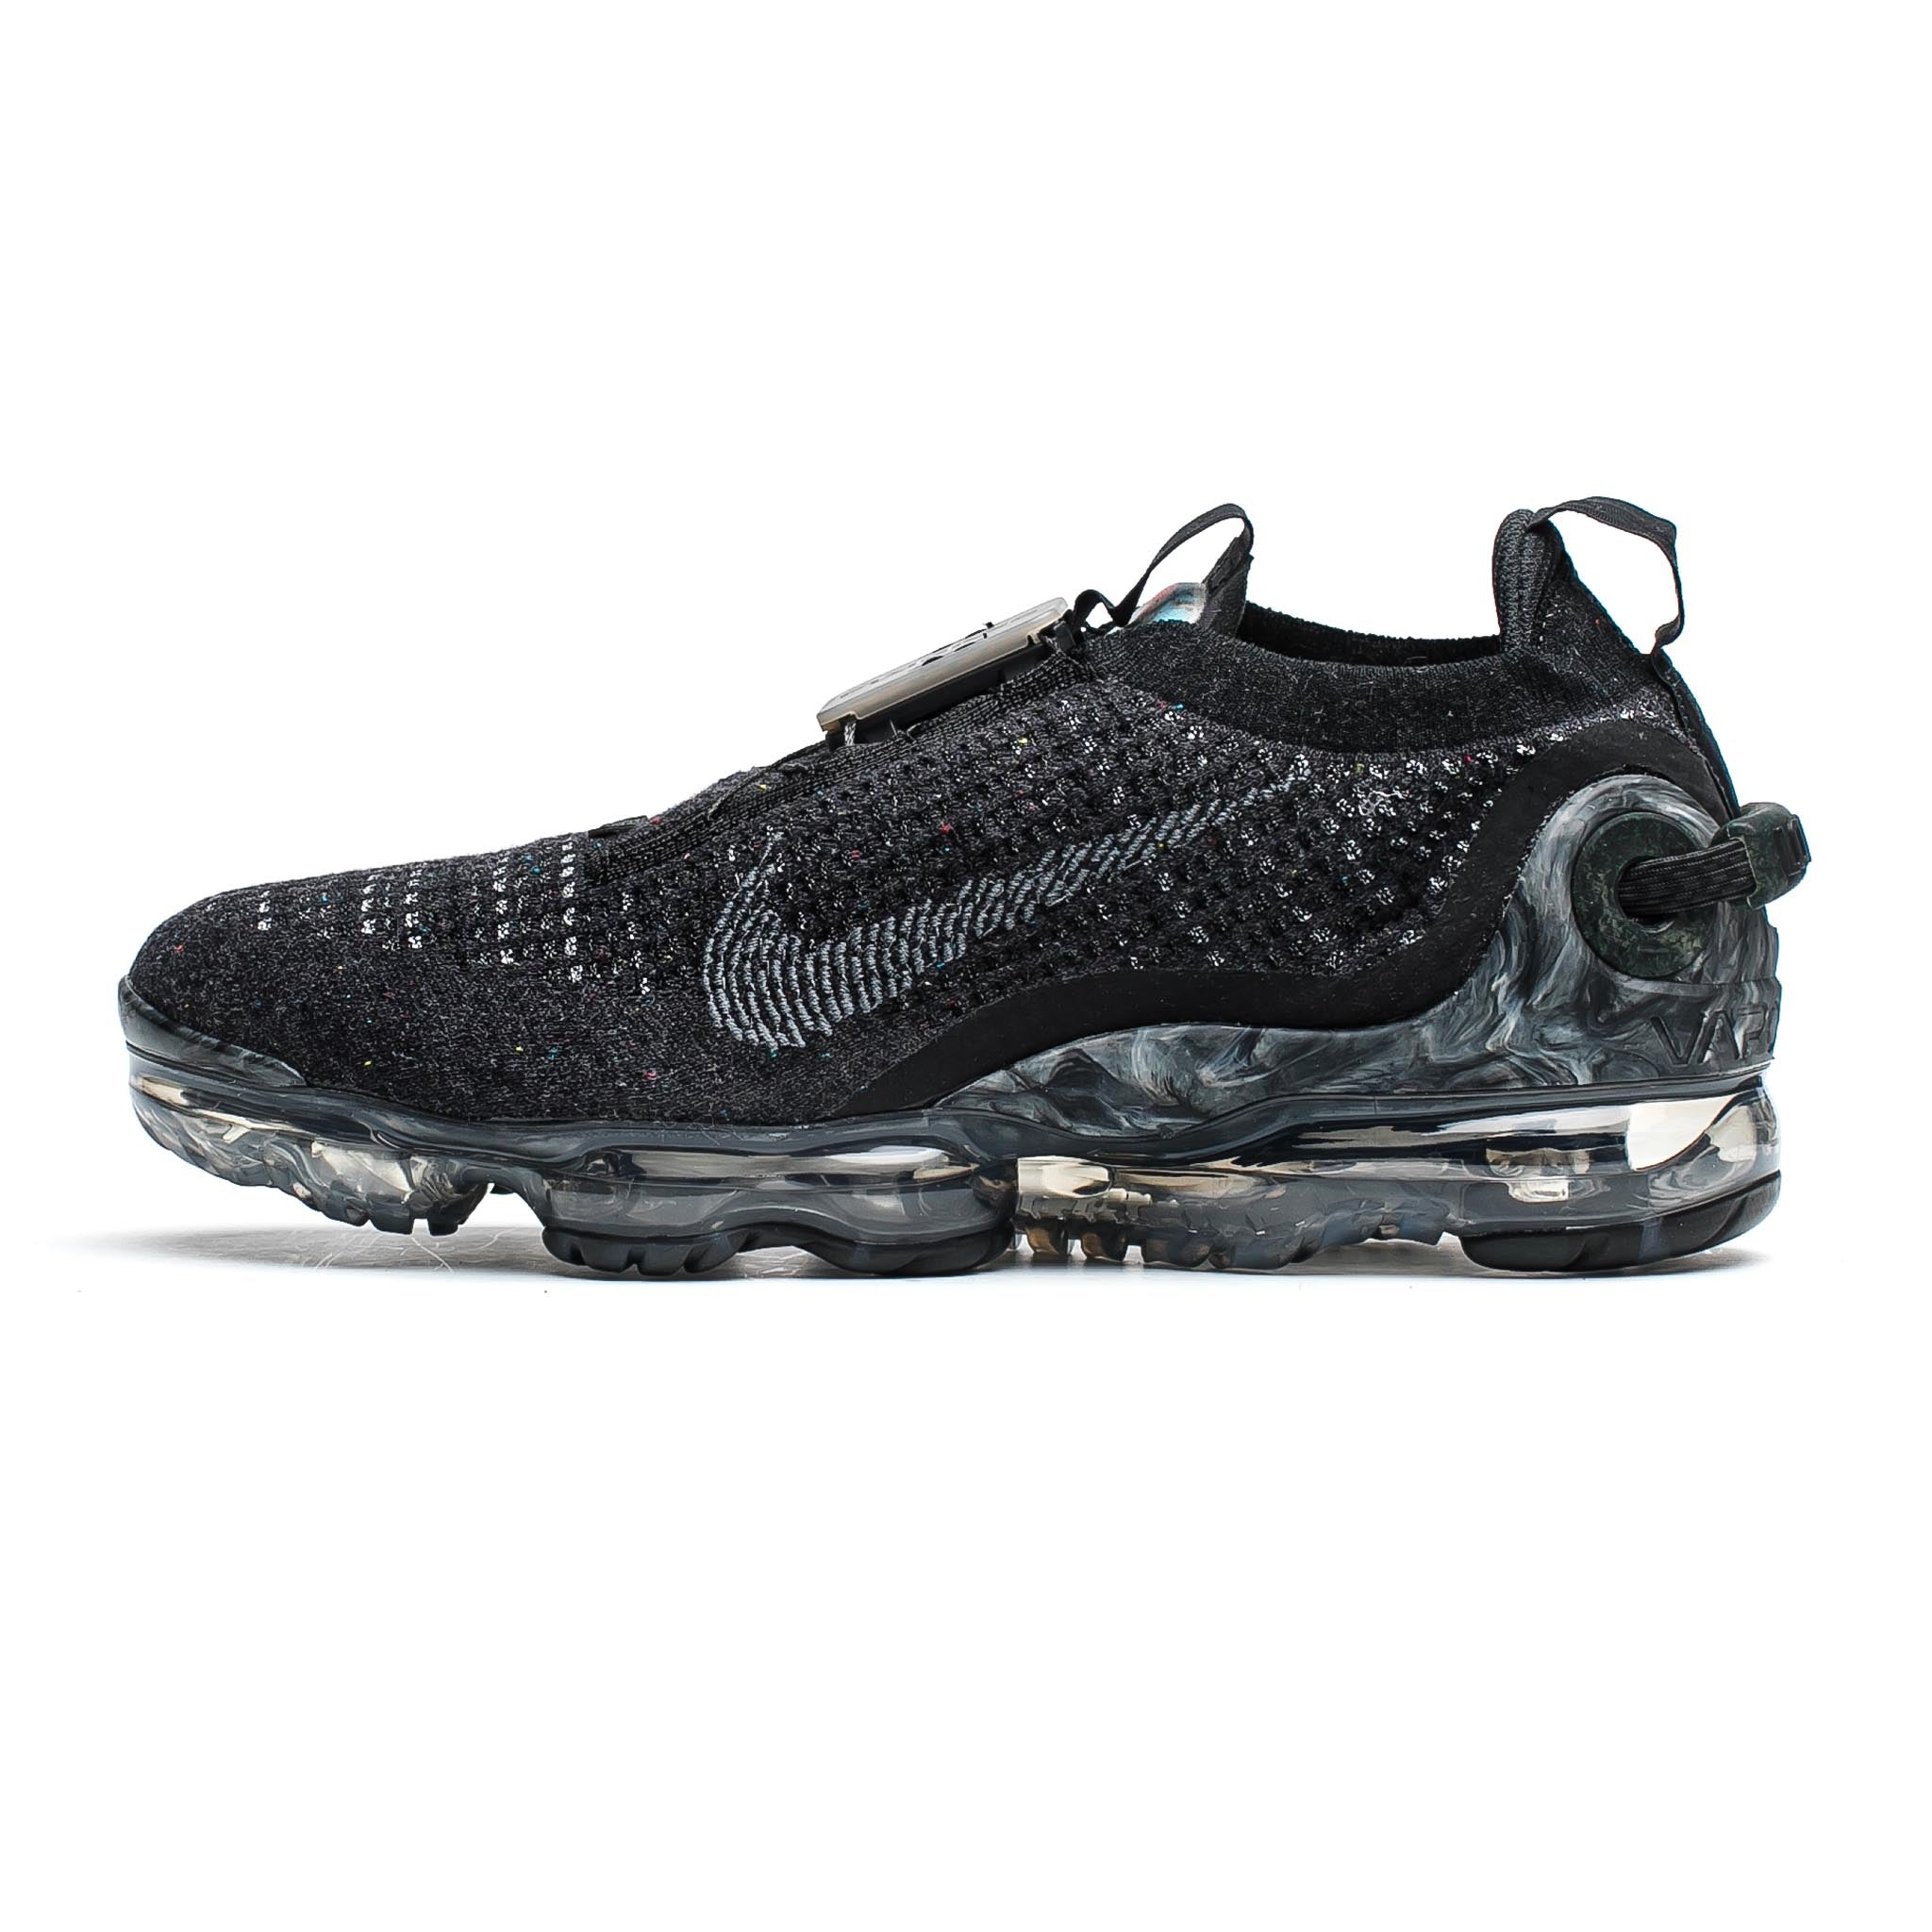 Nike Air Vapormax 2020 FK 'Dark Grey'